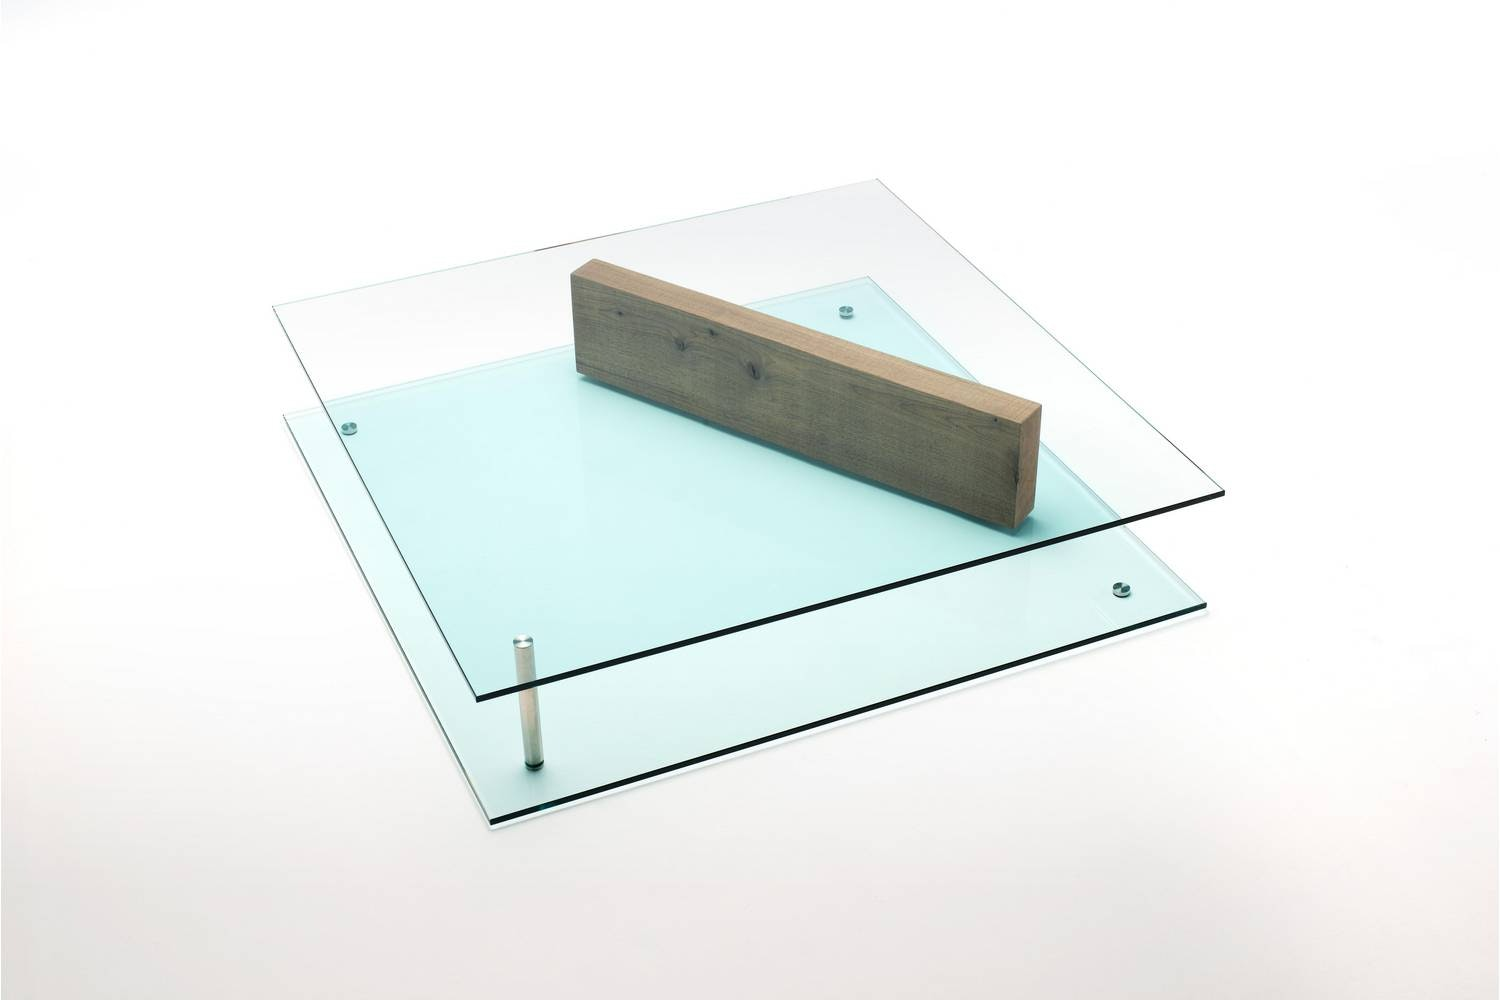 Plane Coffee Table by Massimo Mariani for Living Divani